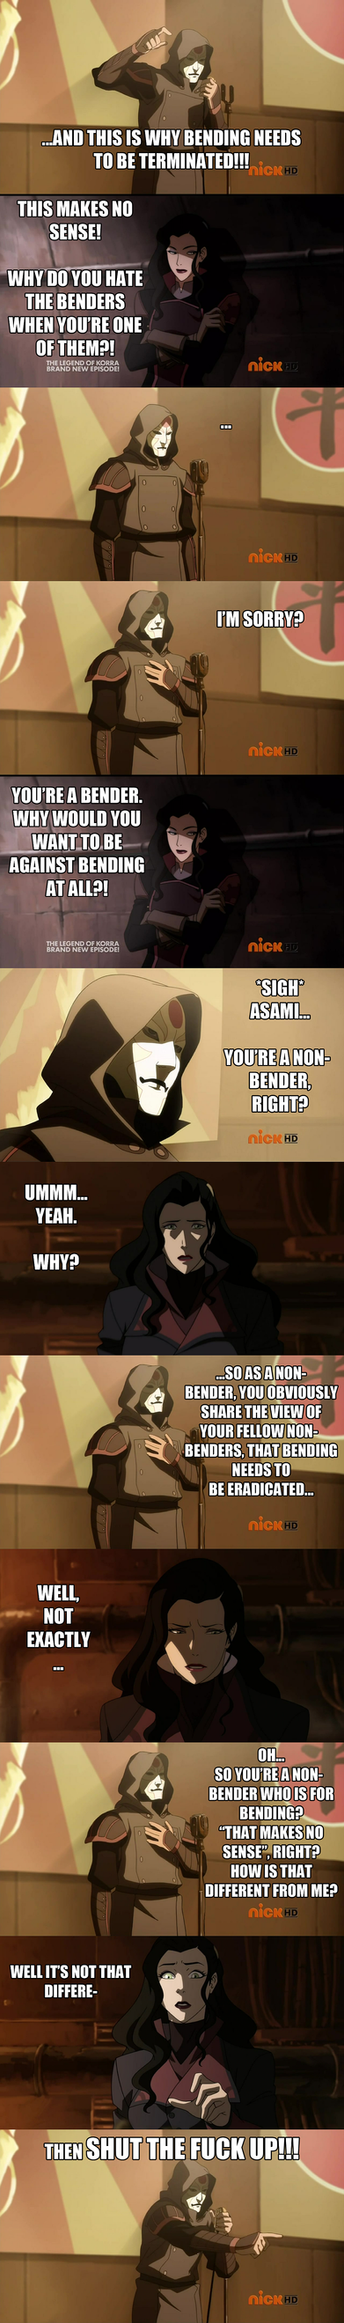 Avatar - Legend of Korra: Amon vs Asami by yourparodies